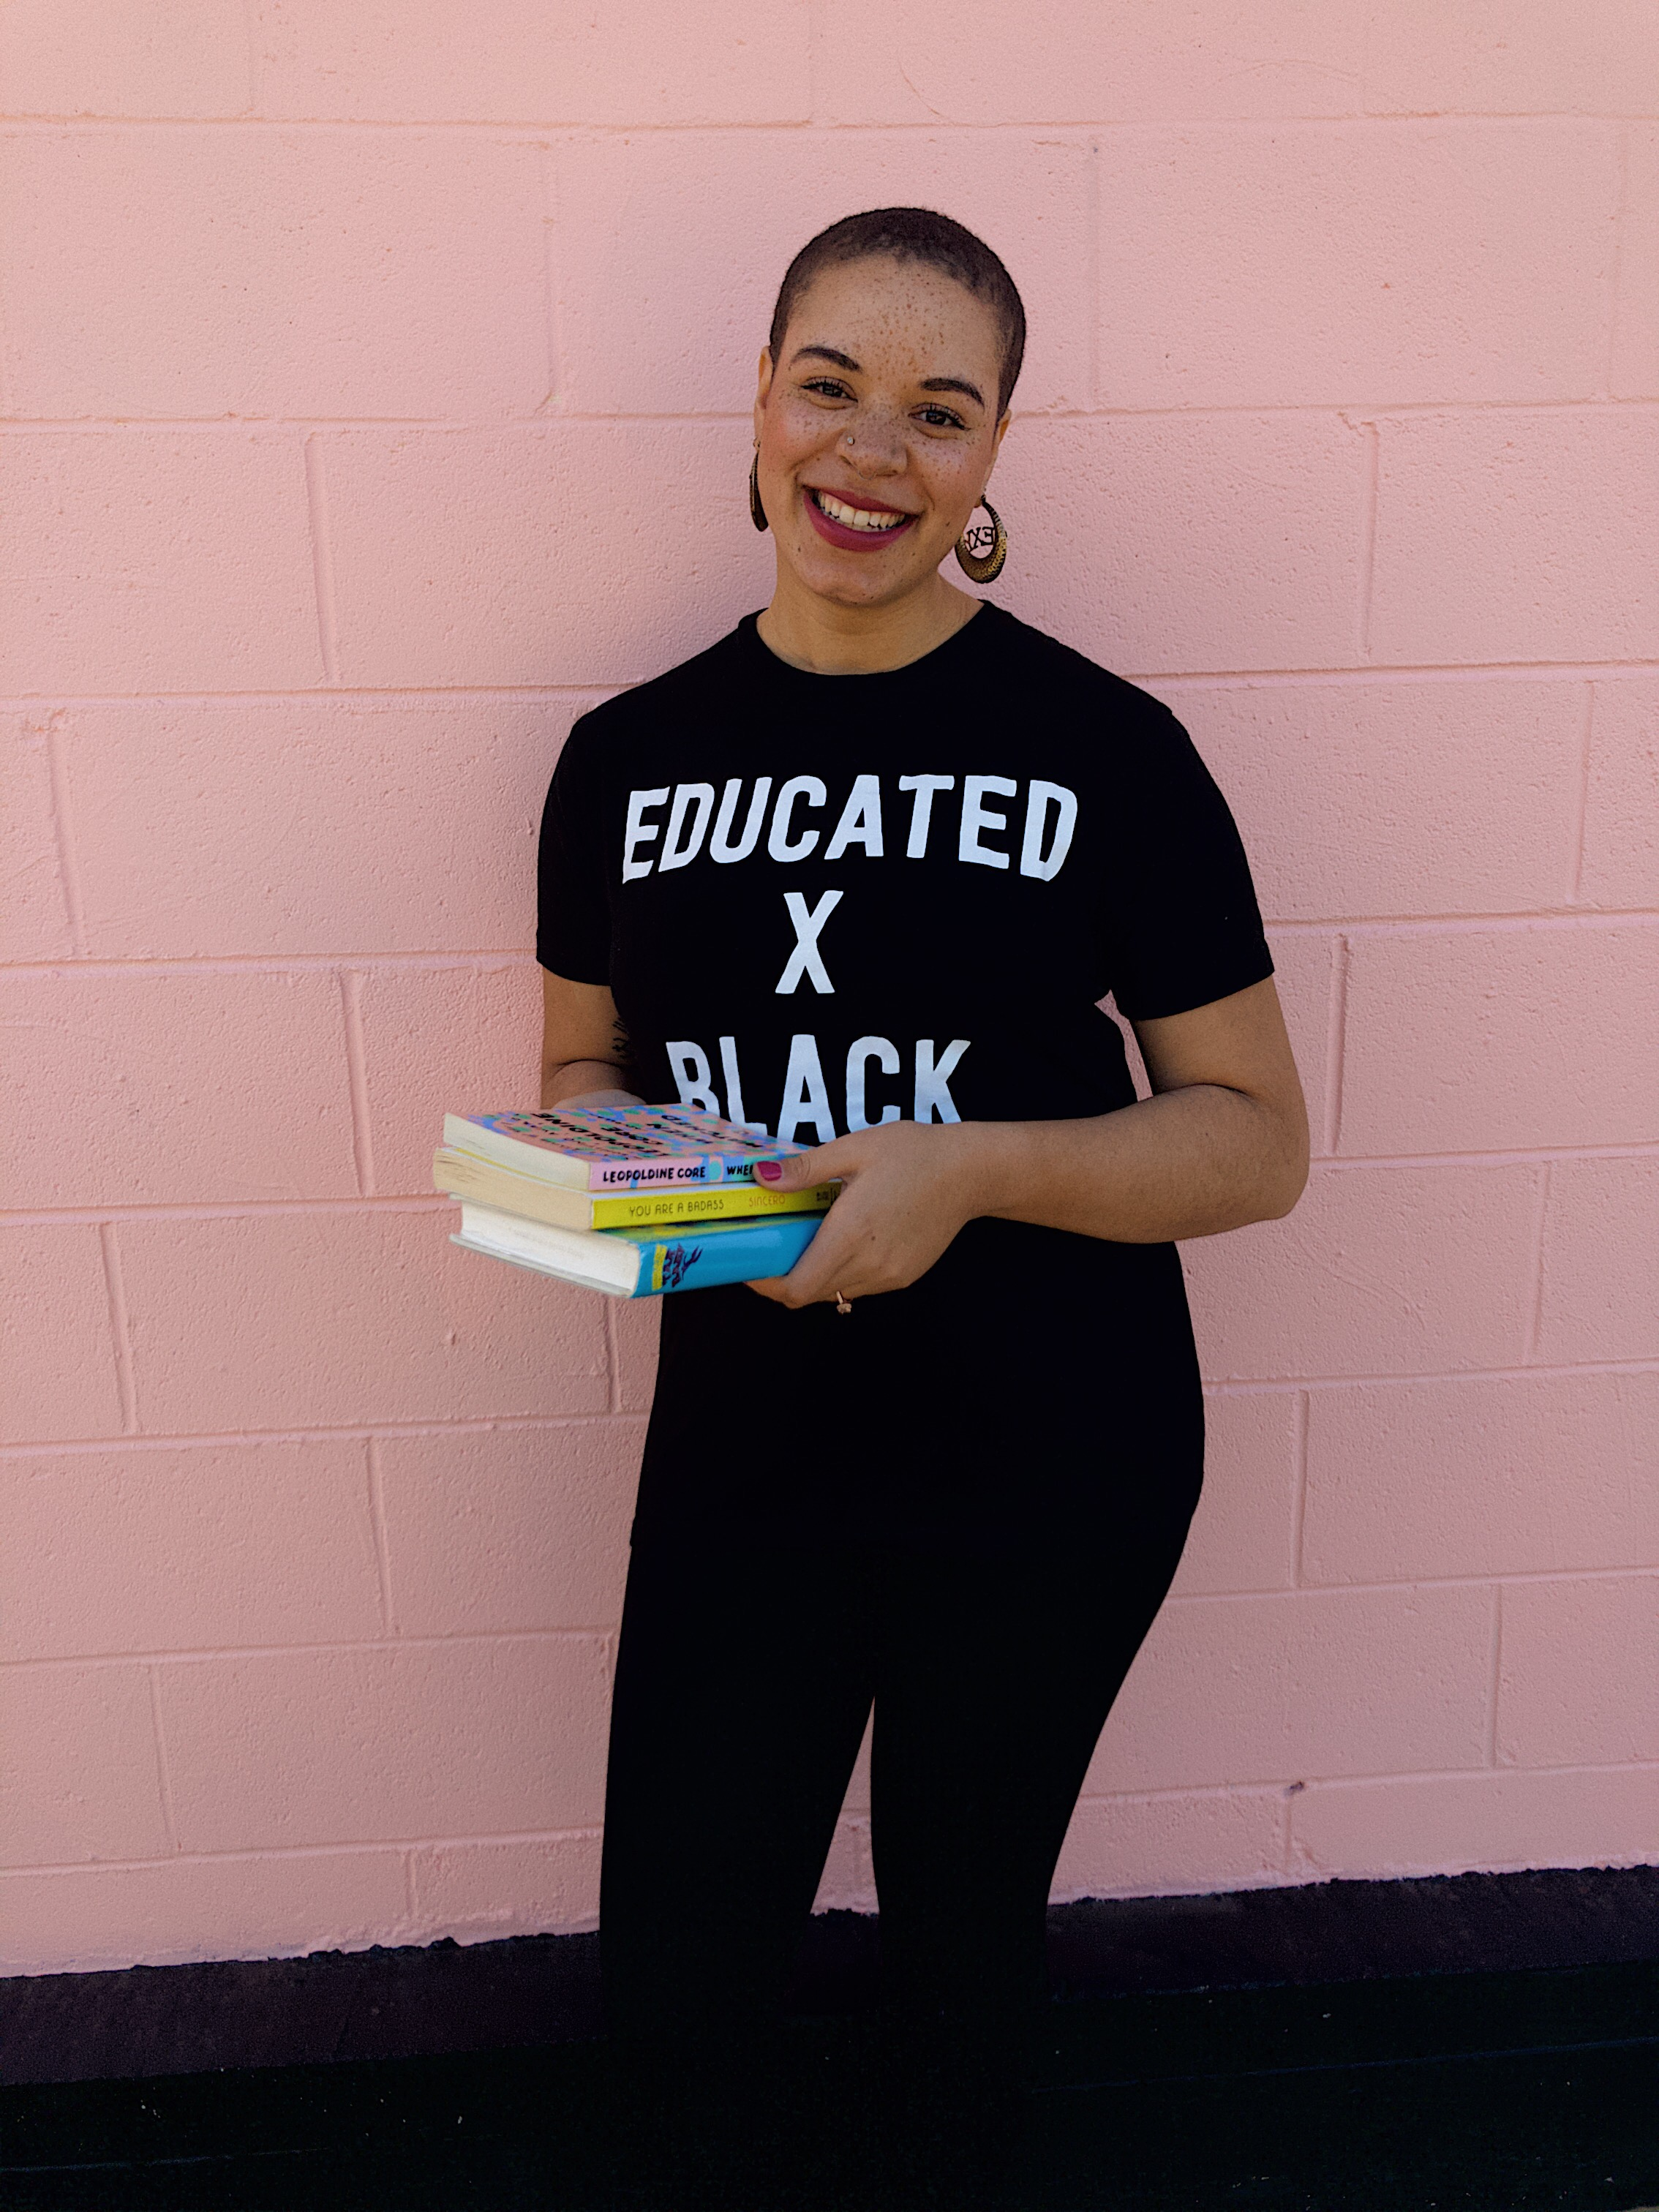 Educated x Black Exploring Self.jpg